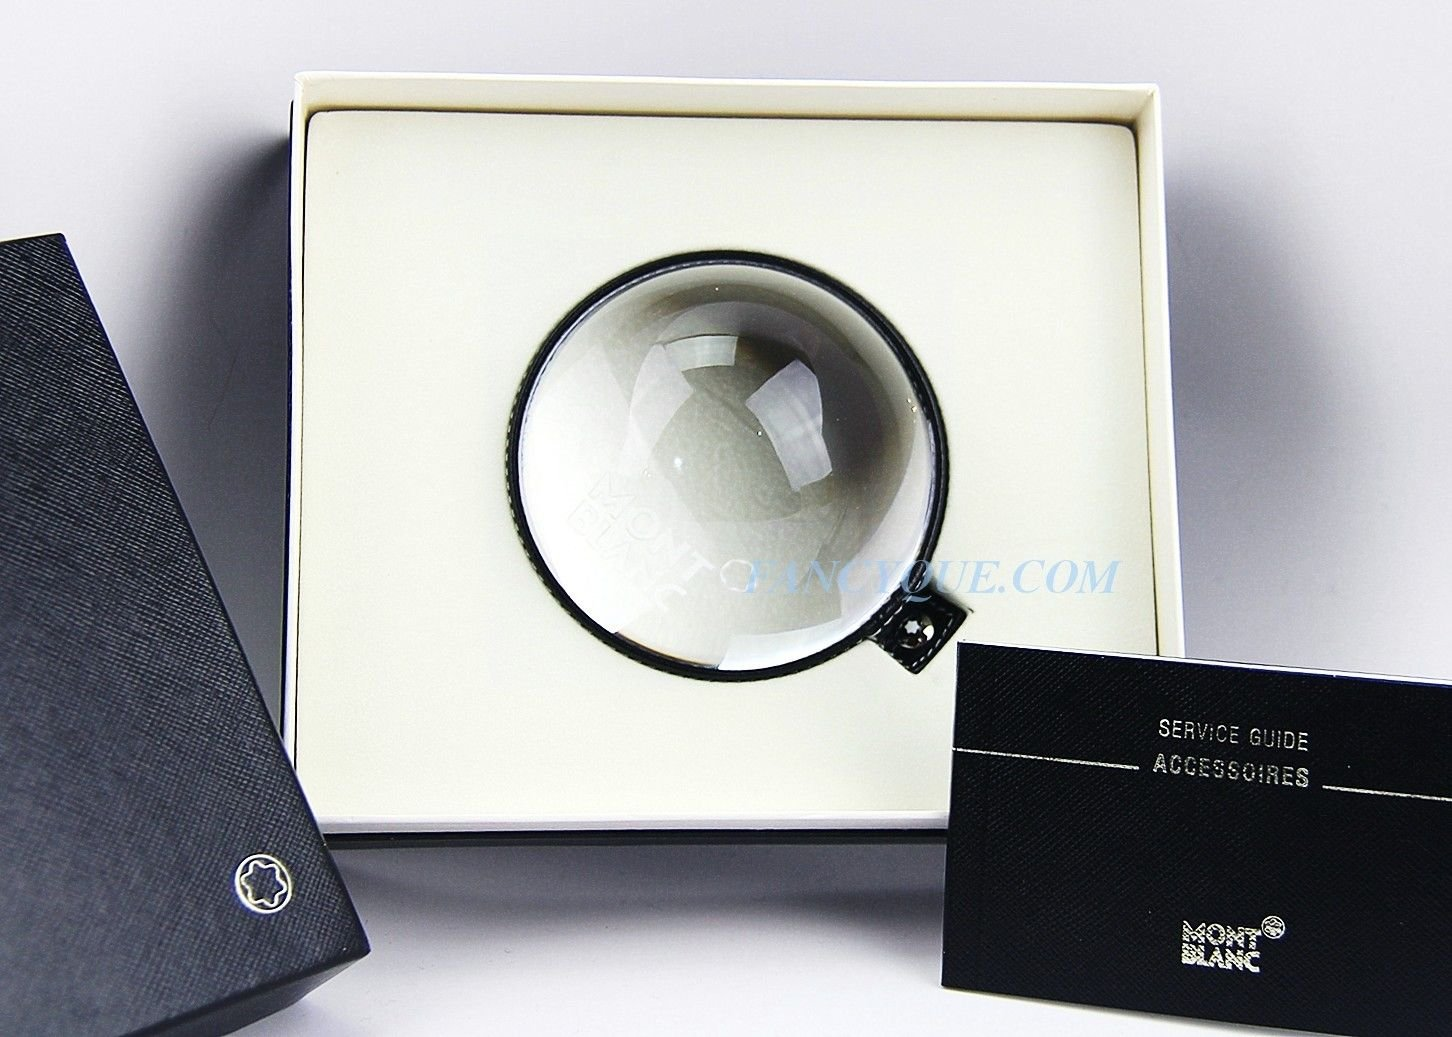 Montblanc Lifestyle Accessories Crystal Paperweight